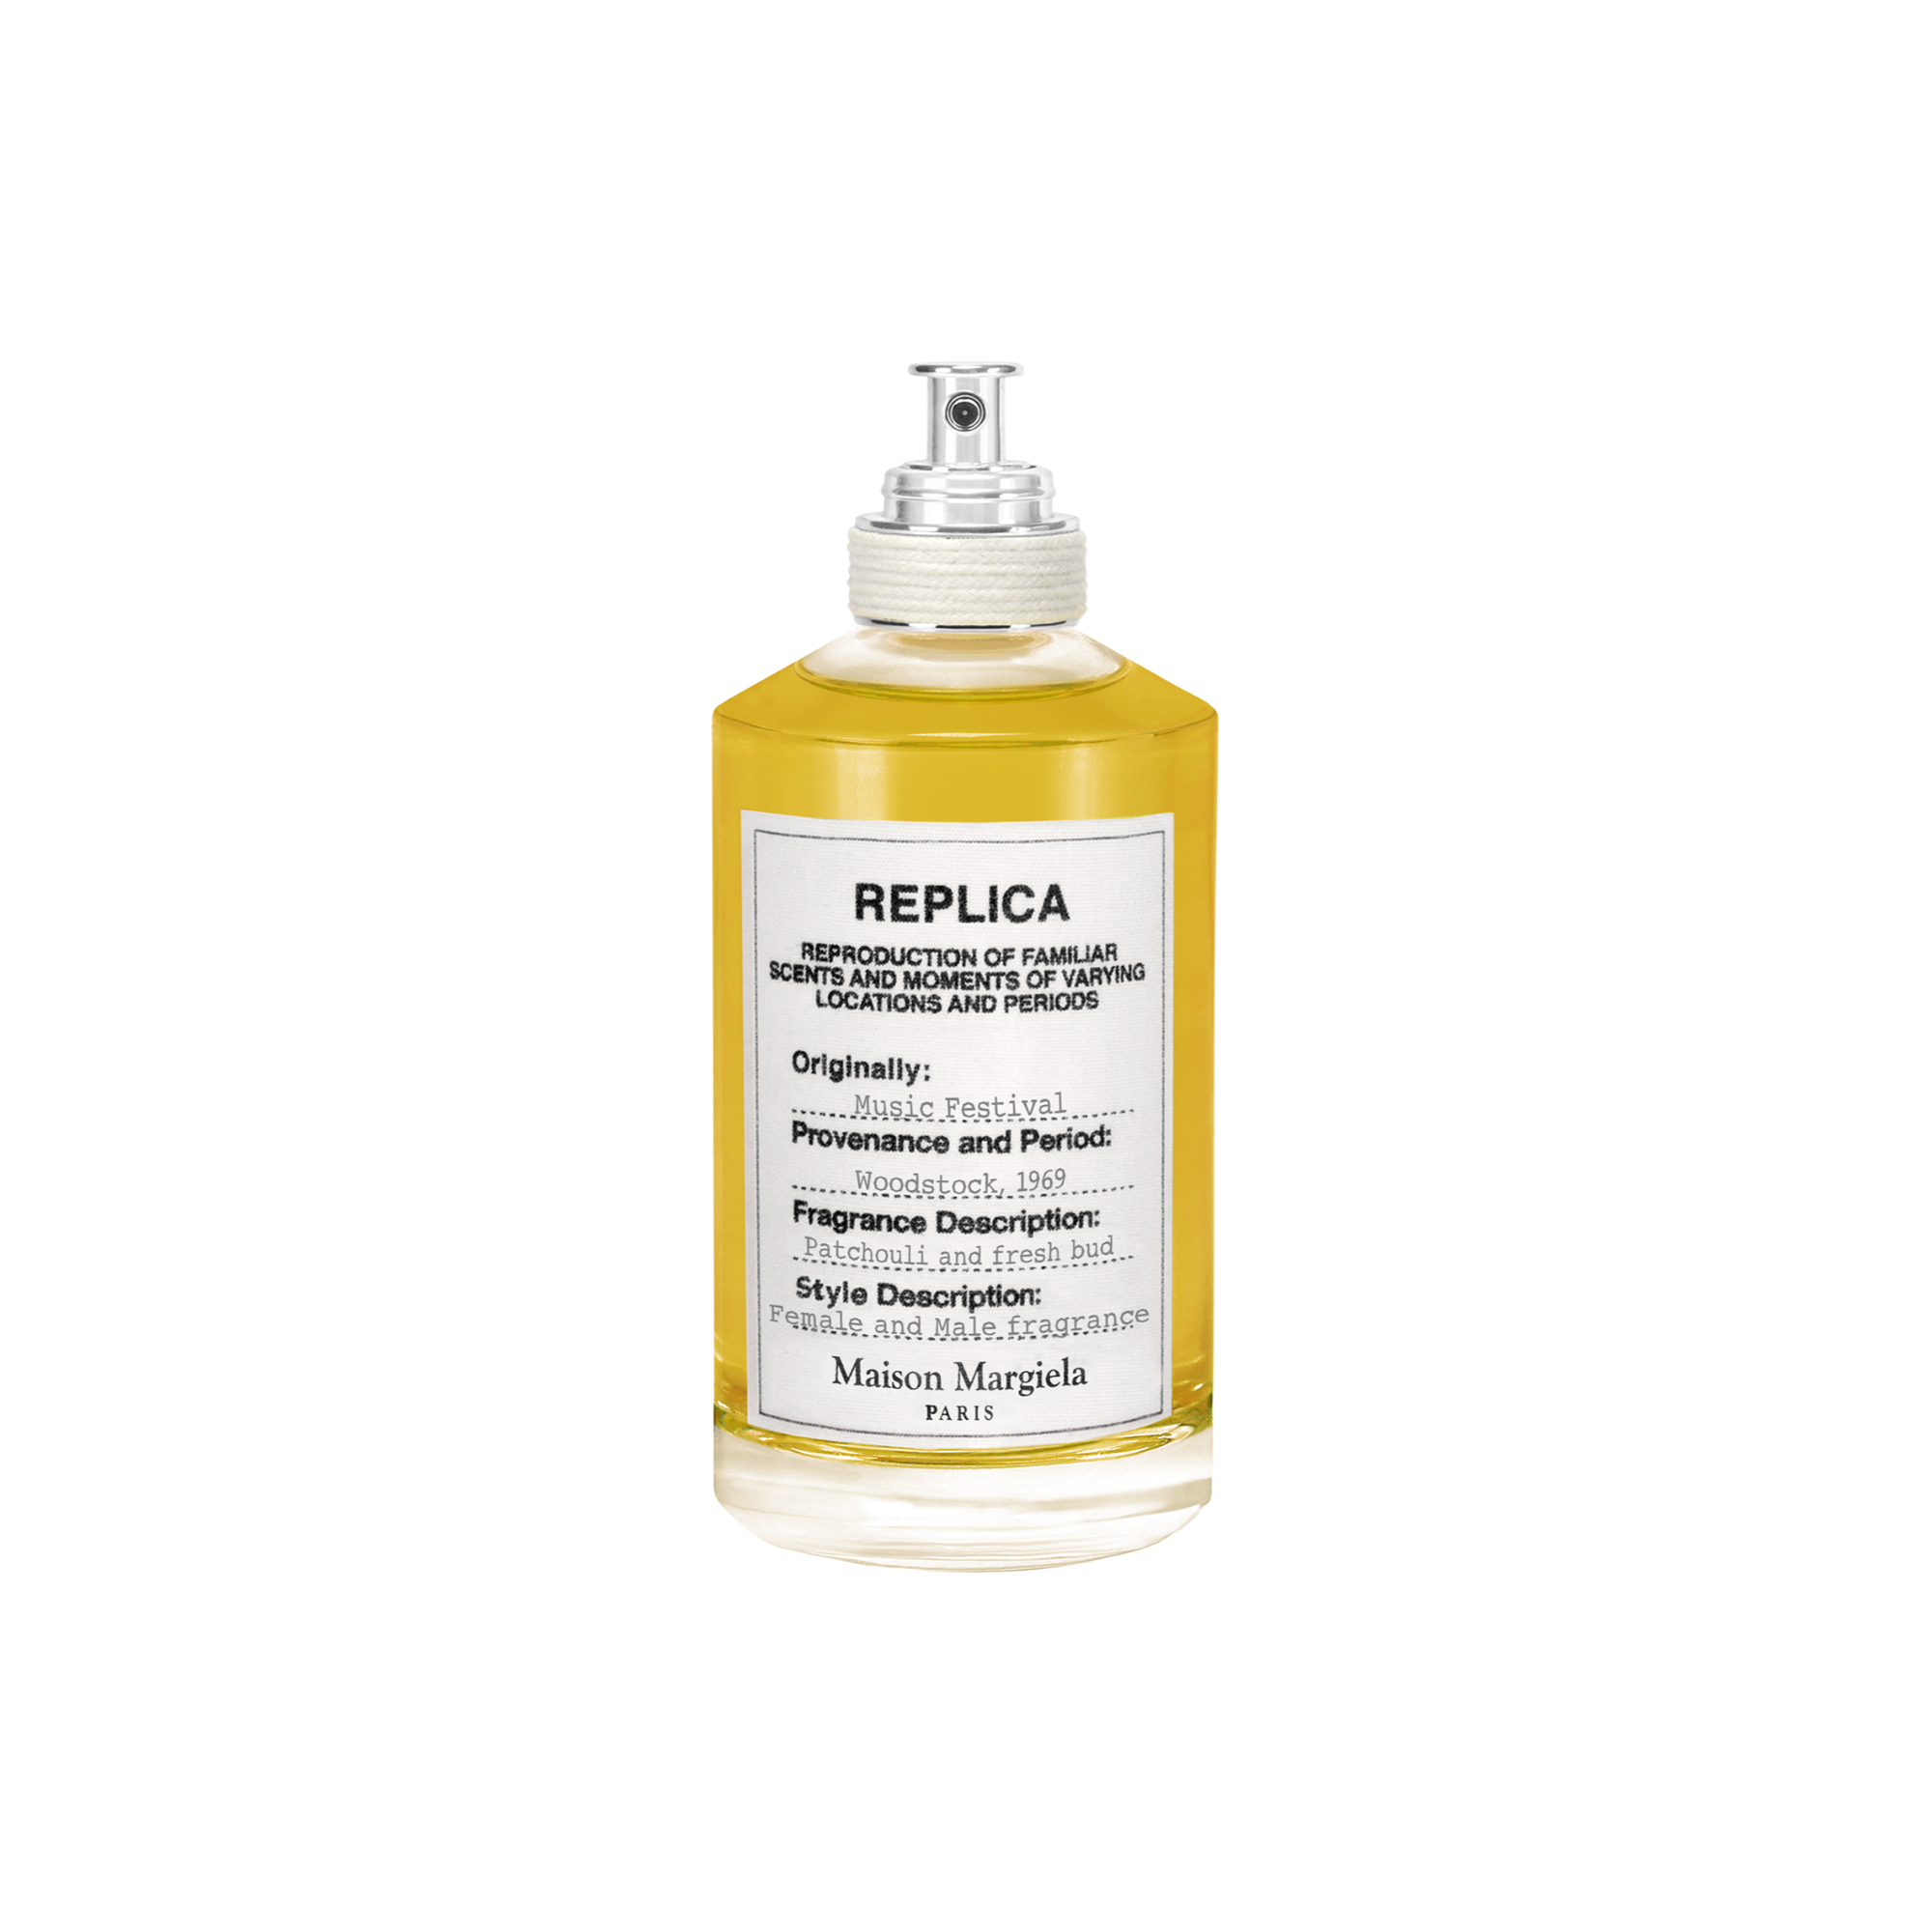 Replica Music Festival EdT 100 ml